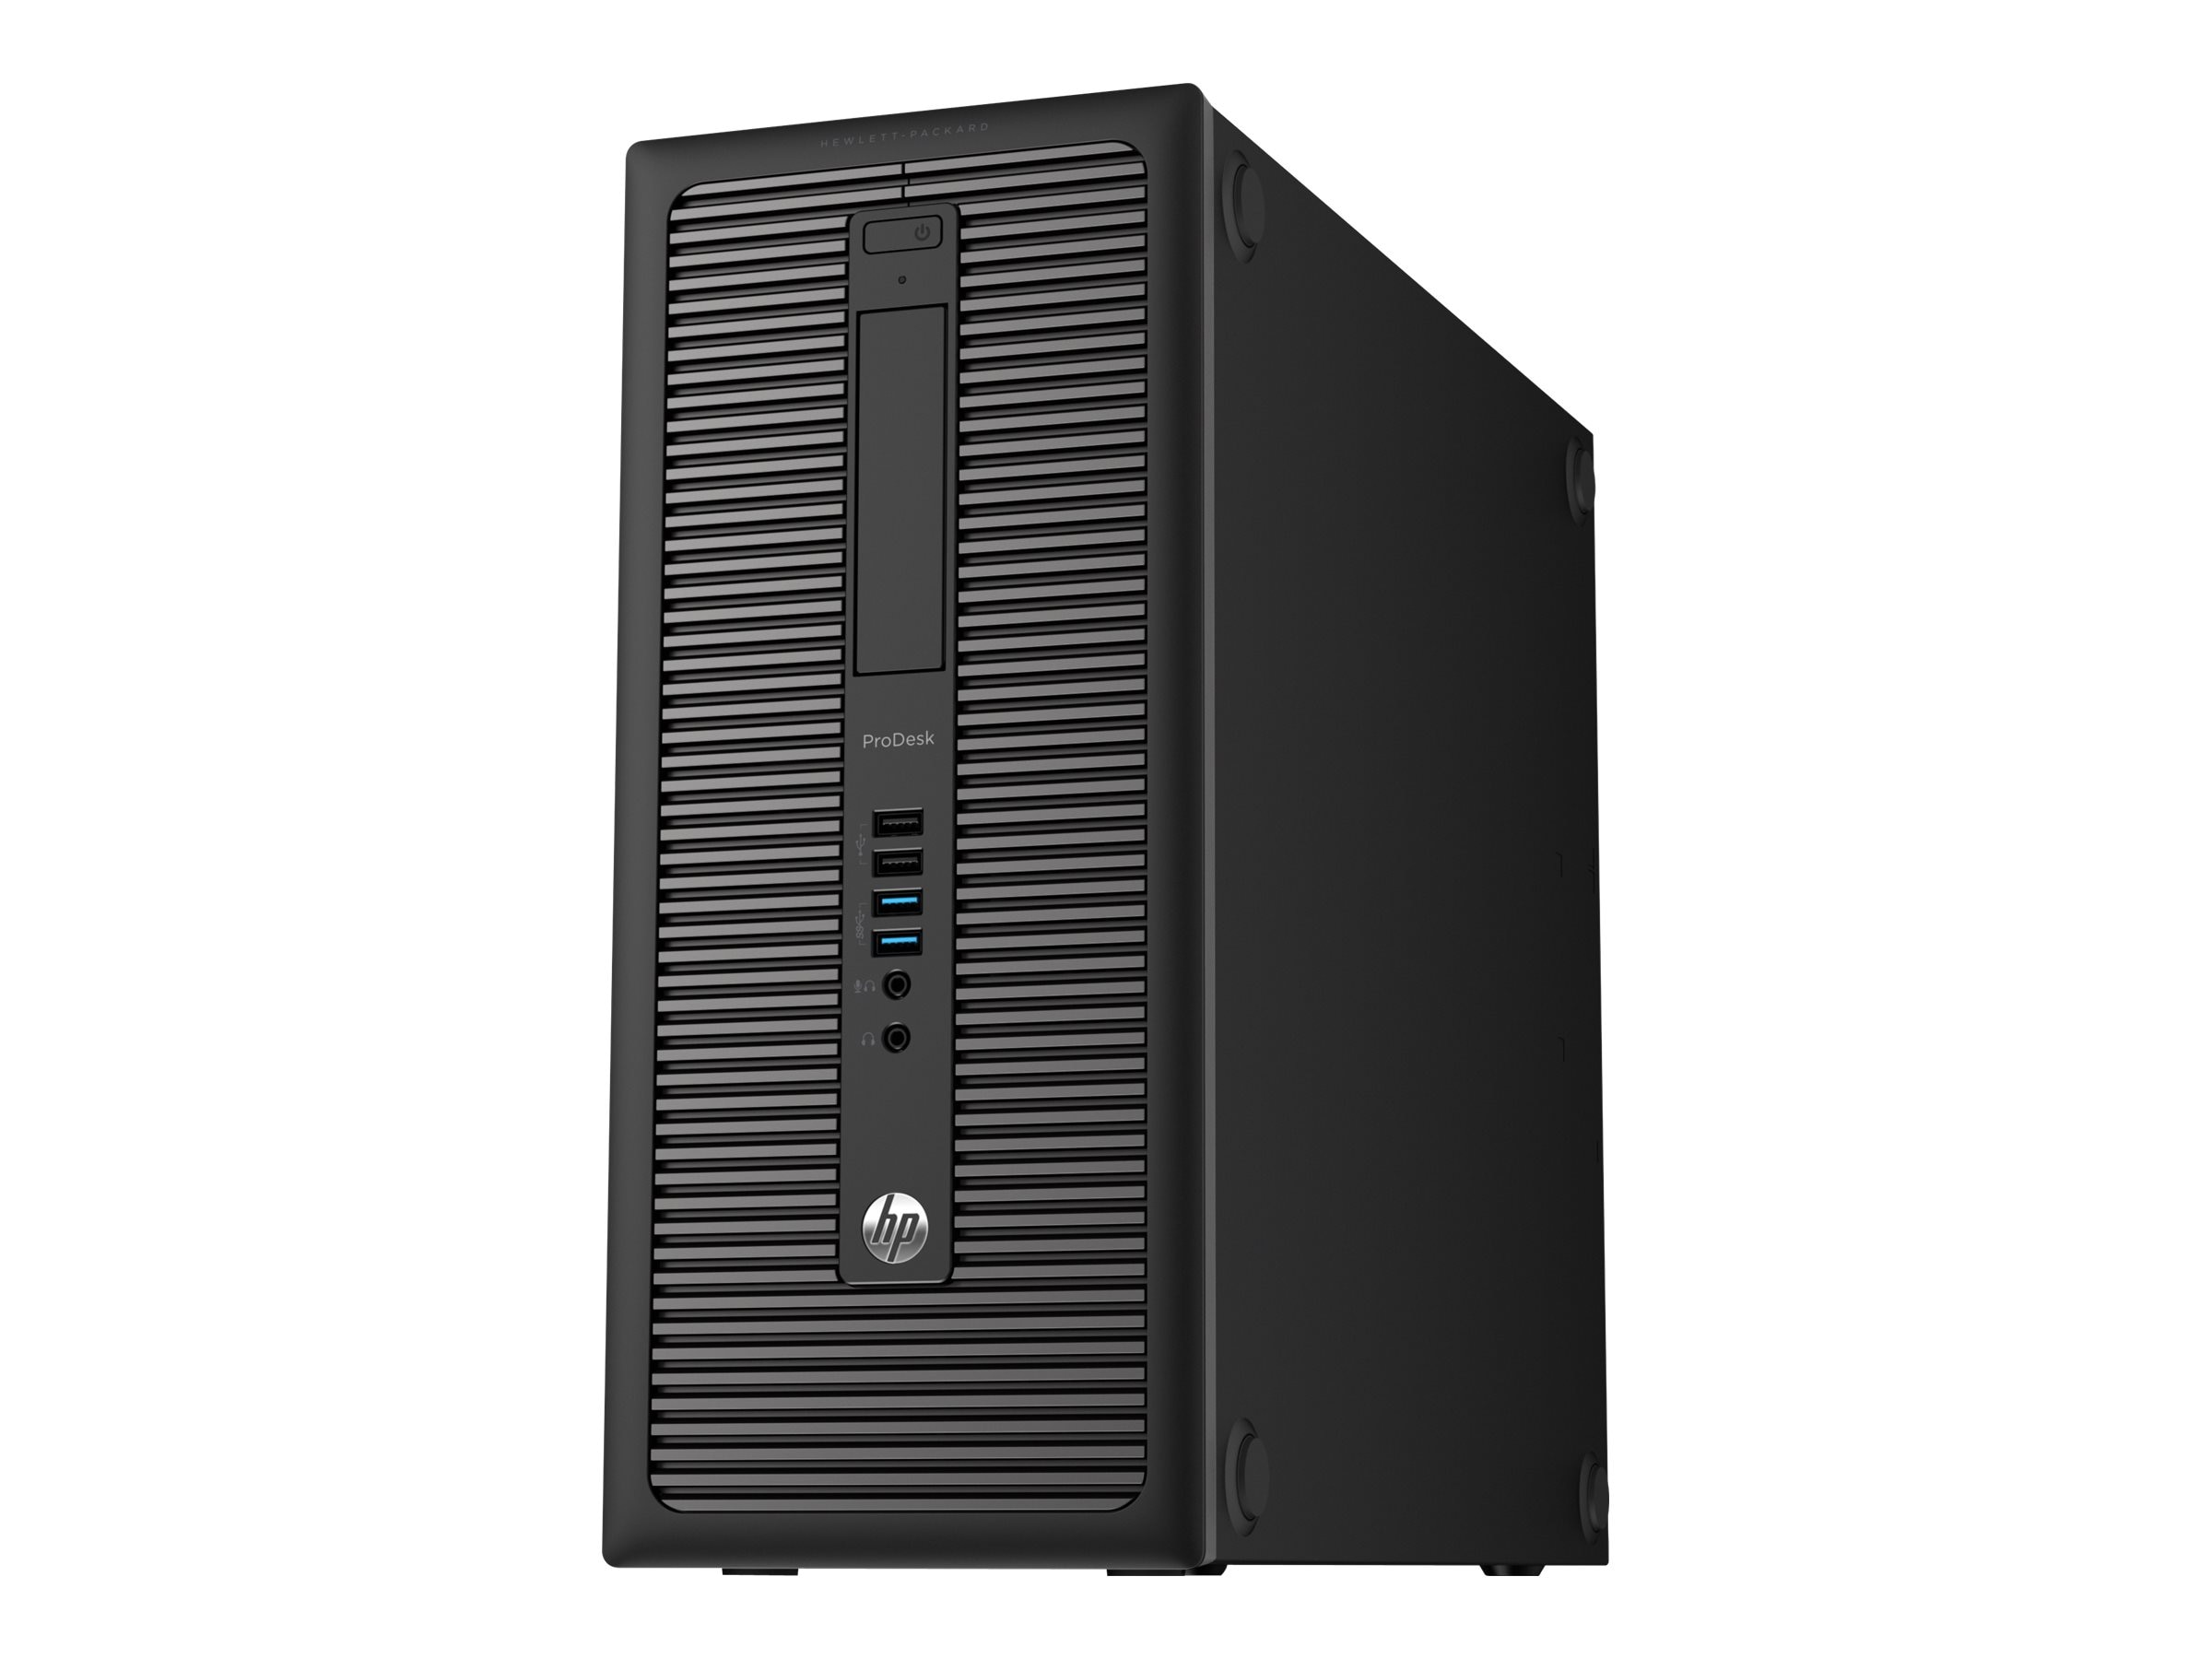 HP EliteDesk 800 Tower Core i5-4570 3.2GHz 8GB 128GB